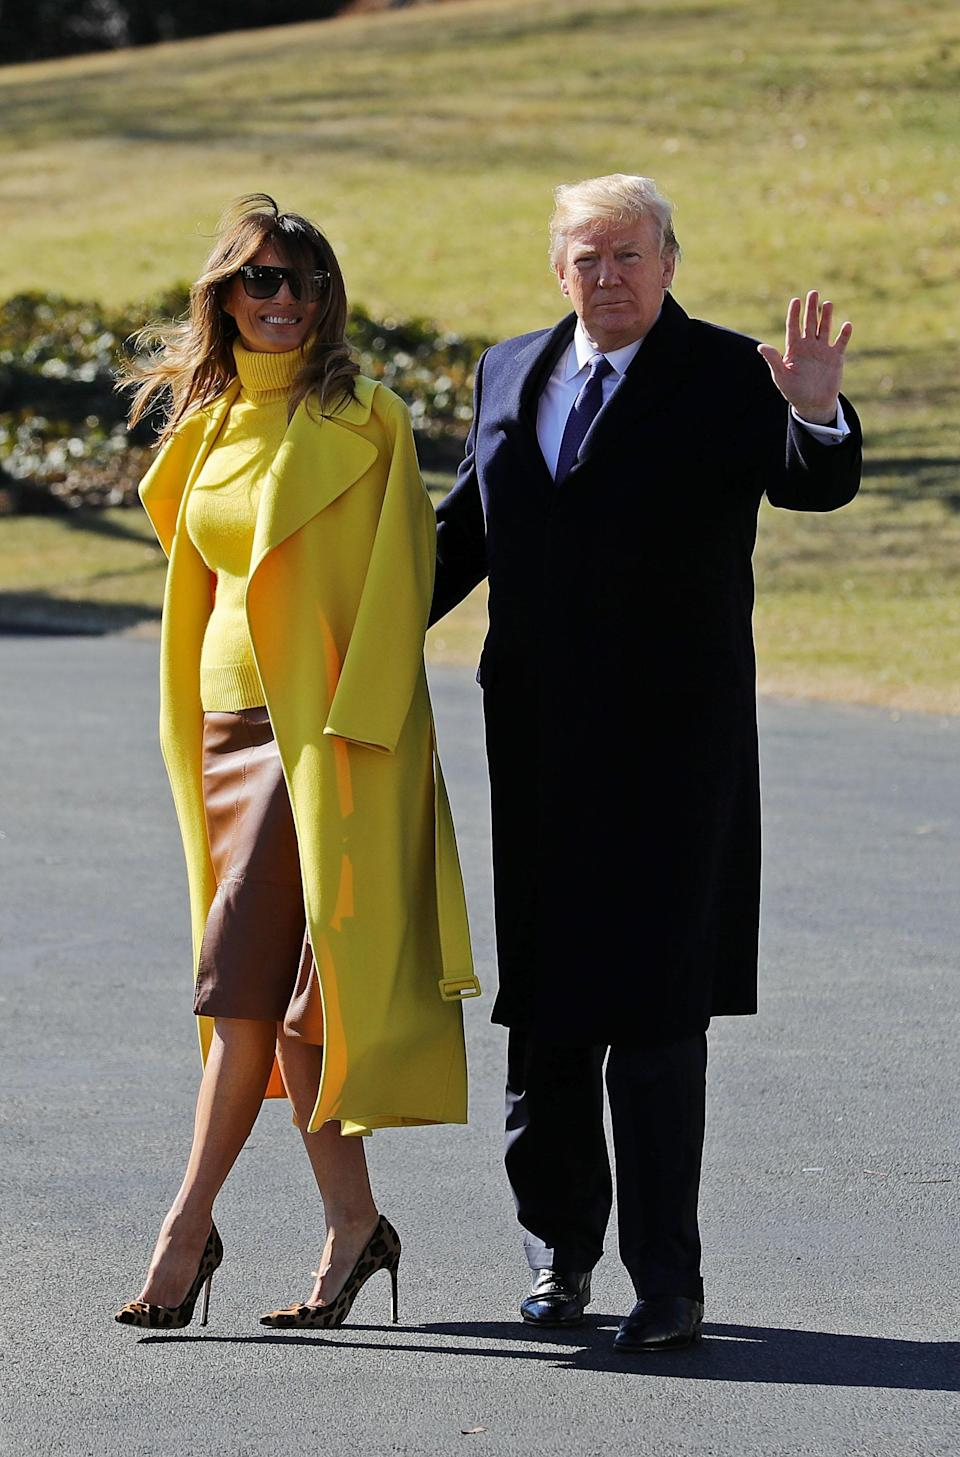 For a trip to Ohio with Donald Trump, Melania dressed in canary yellow. The coat draped over her shoulders is courtesy of Ralph Lauren which she teamed with a leather skirt by Hervé Pierre. [Photo: Getty]